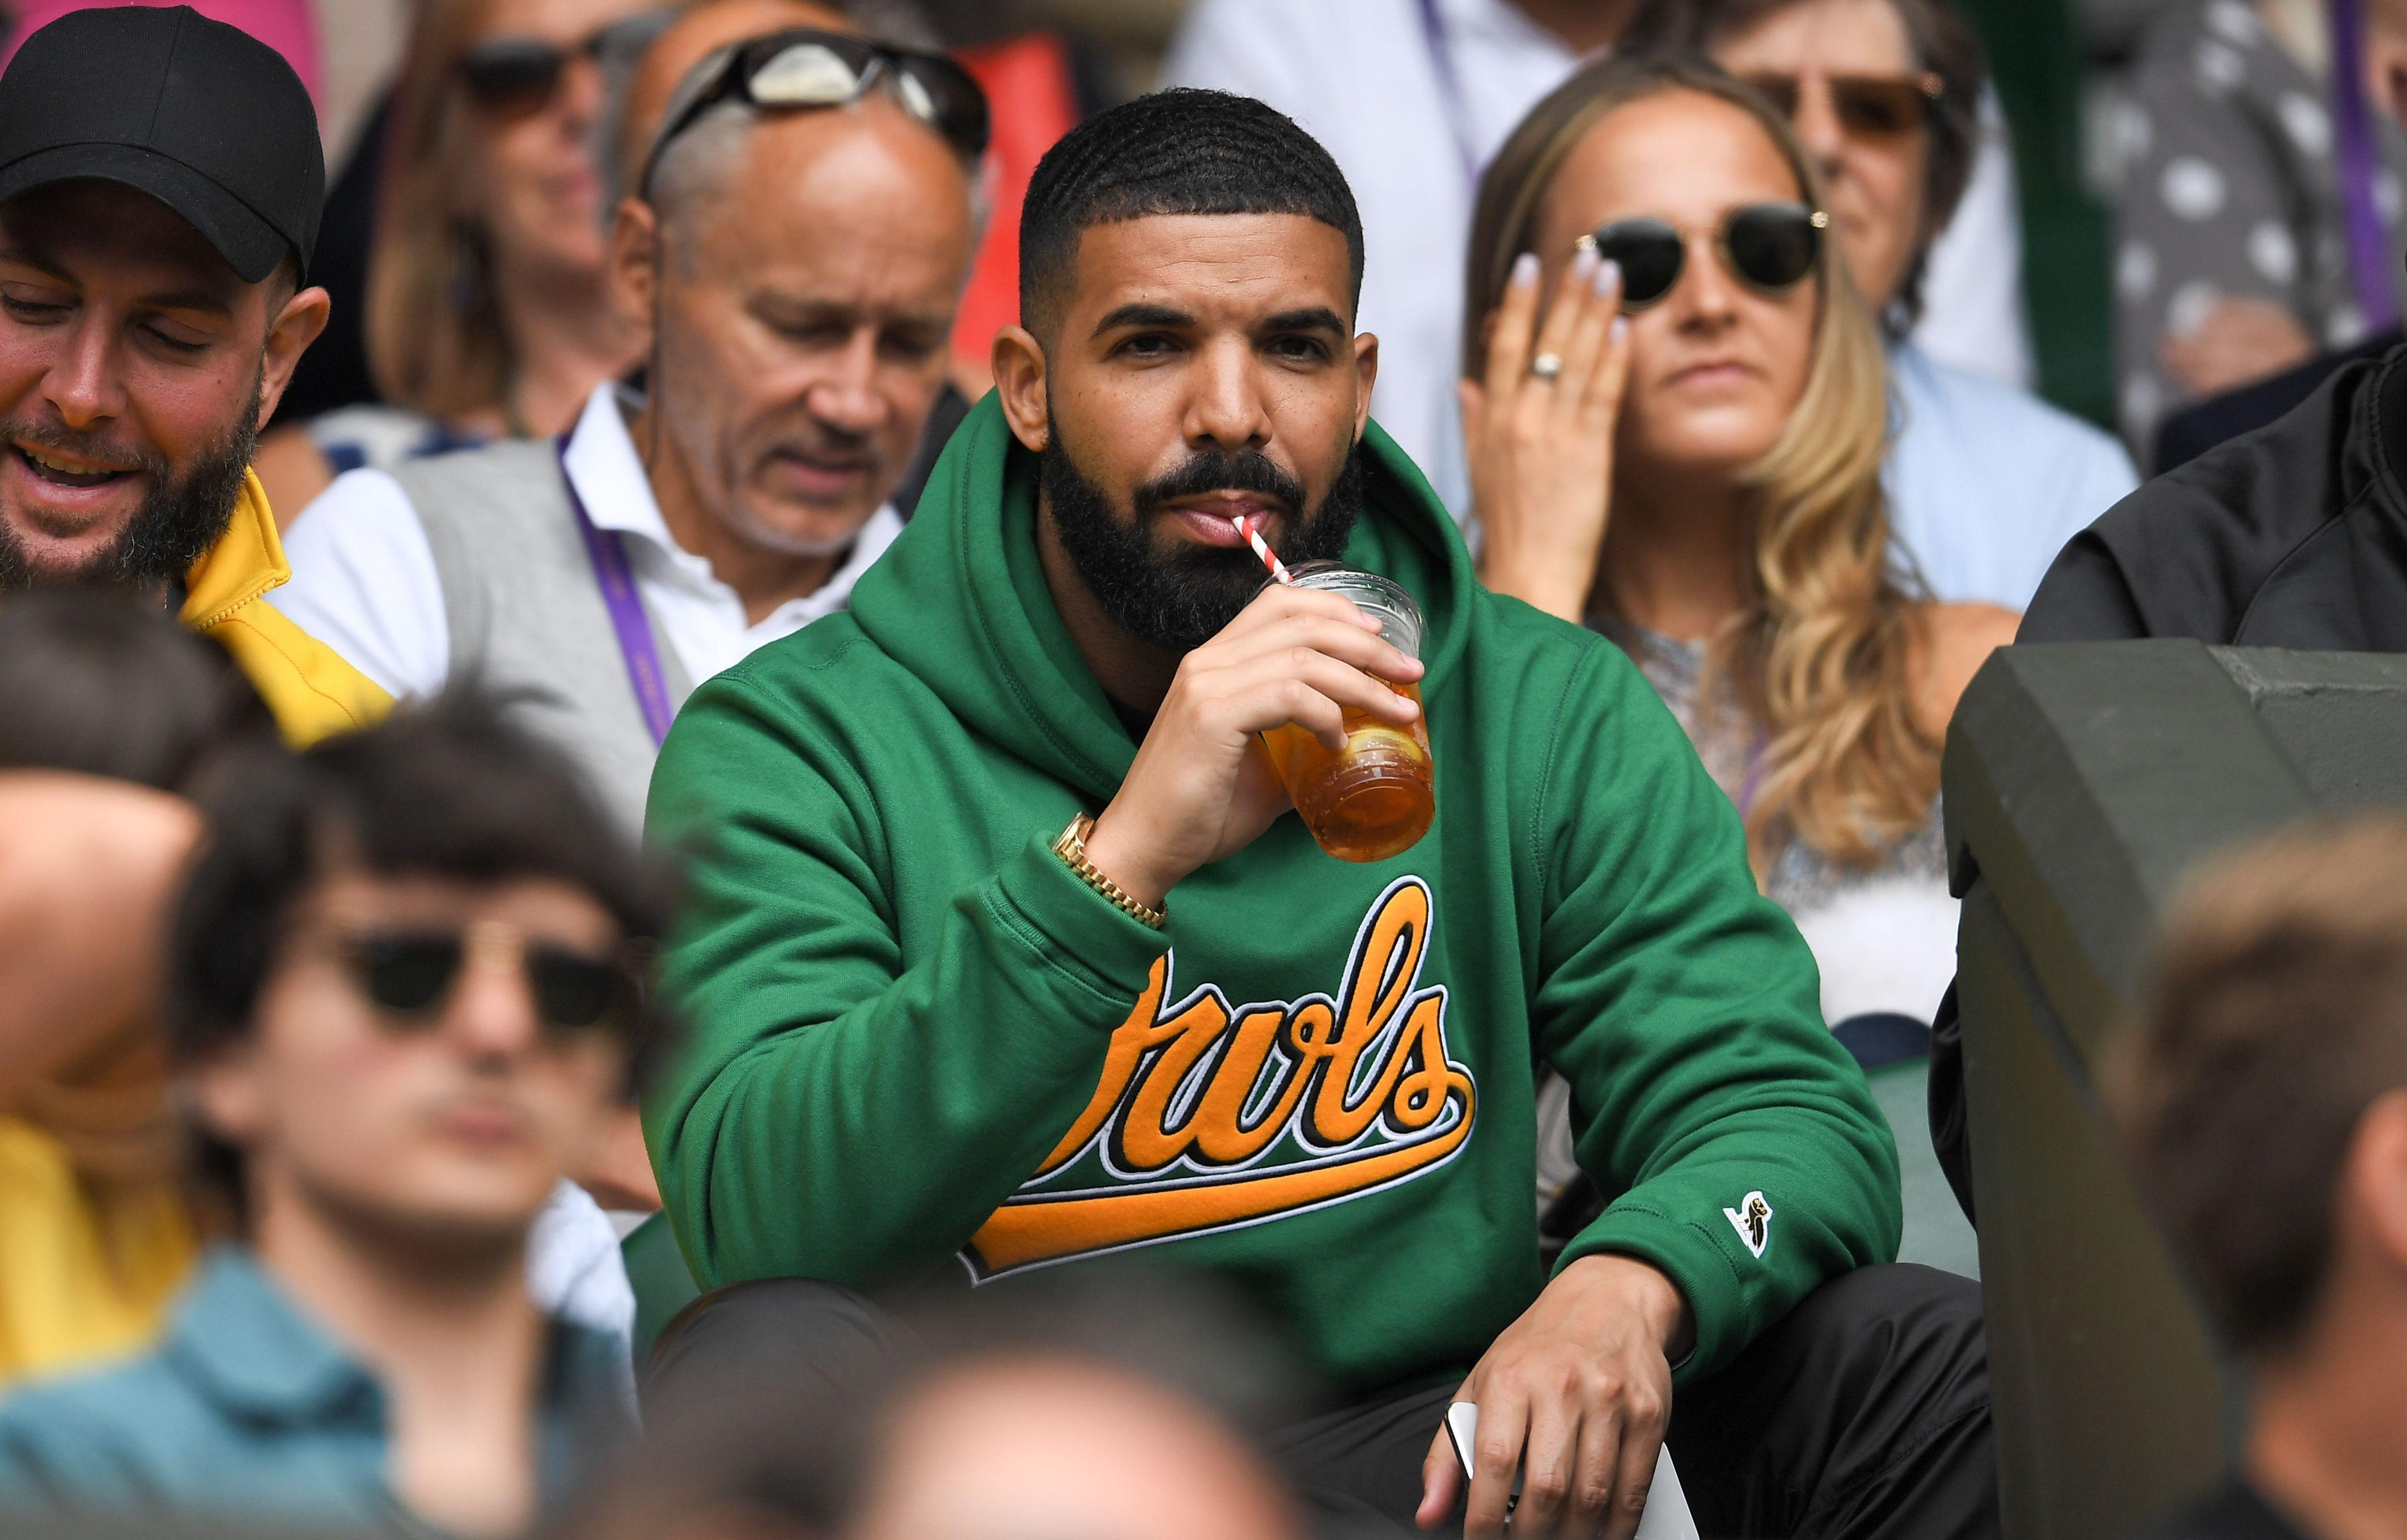 US rapper Drake was spotted sipping on Pimms